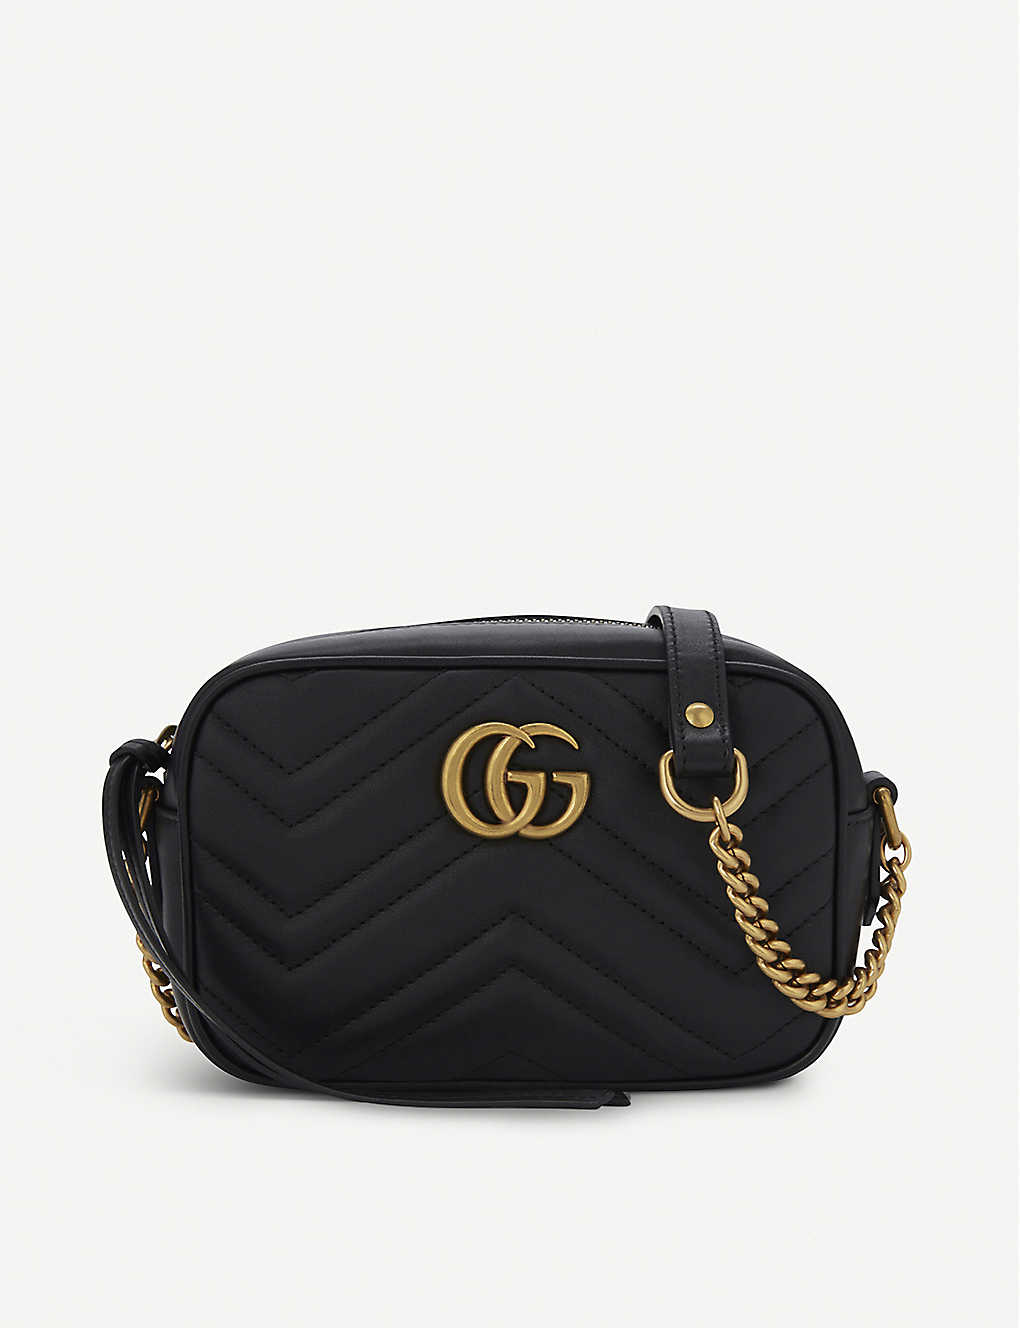 78996d82bb2a GUCCI - GG Marmont mini quilted leather cross-body bag | Selfridges.com